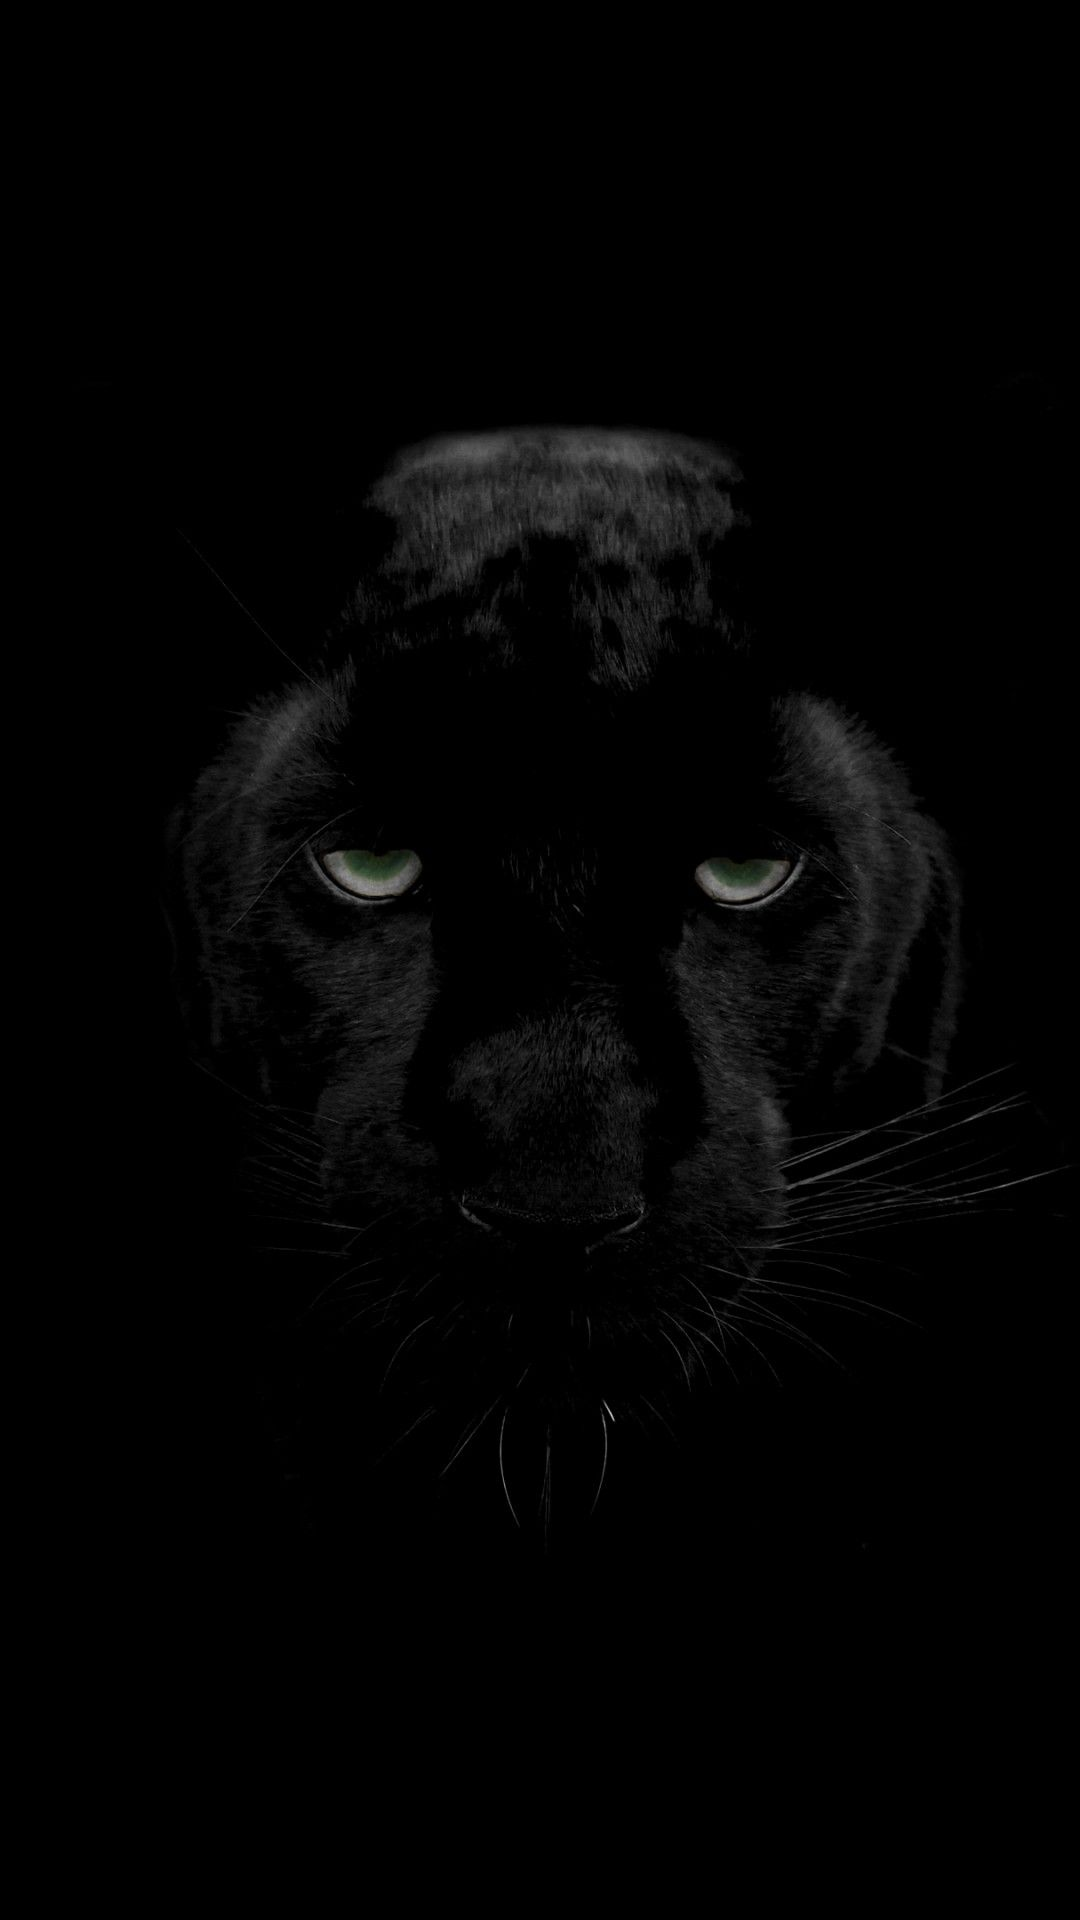 1080x1920 Black Panther 4K Wallpapers | HD Wallpapers | ID #25460